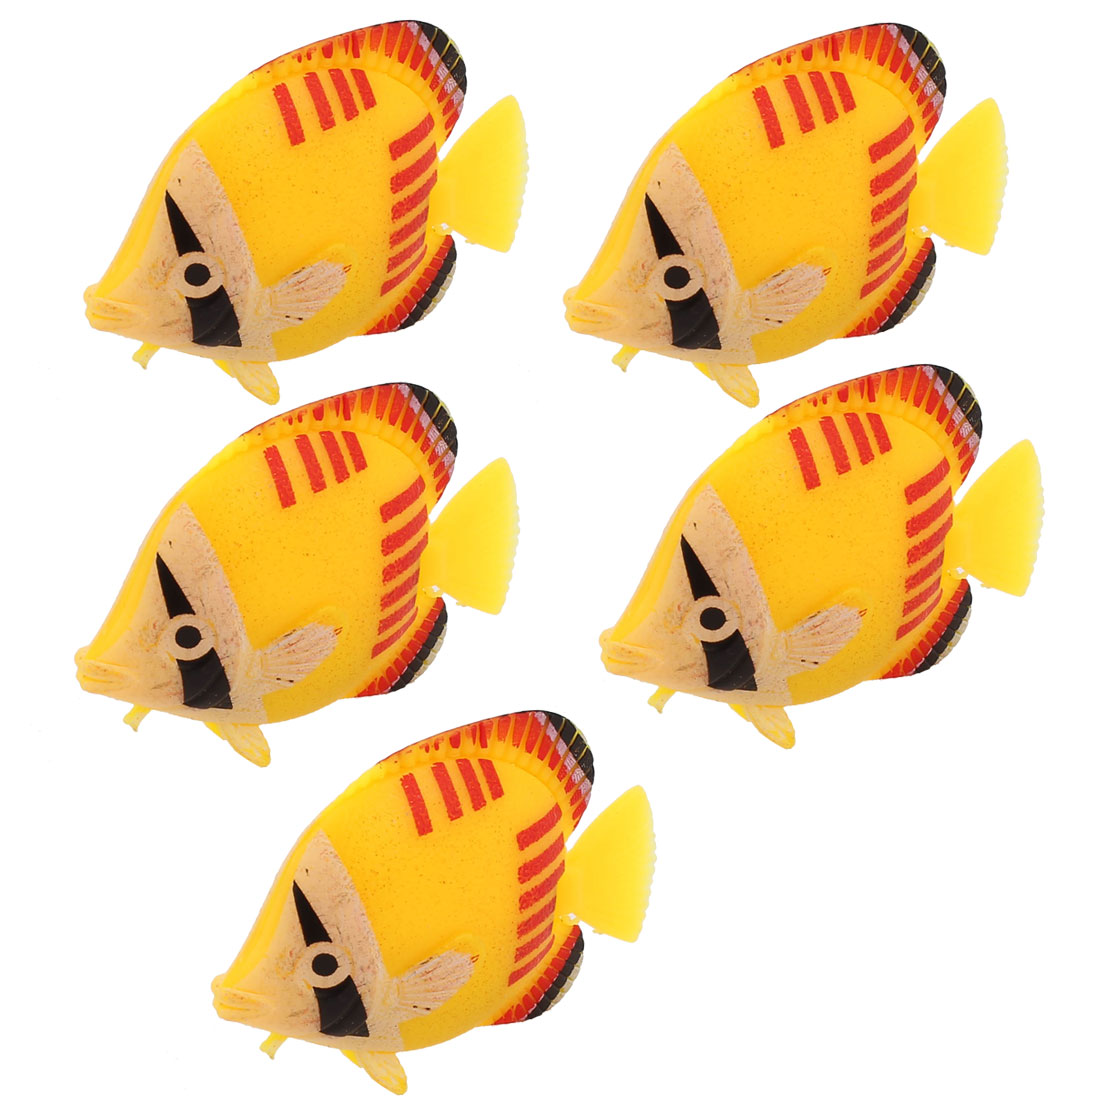 5 Pcs Stylish Plastic Floating Fish Ornament for Aquarium